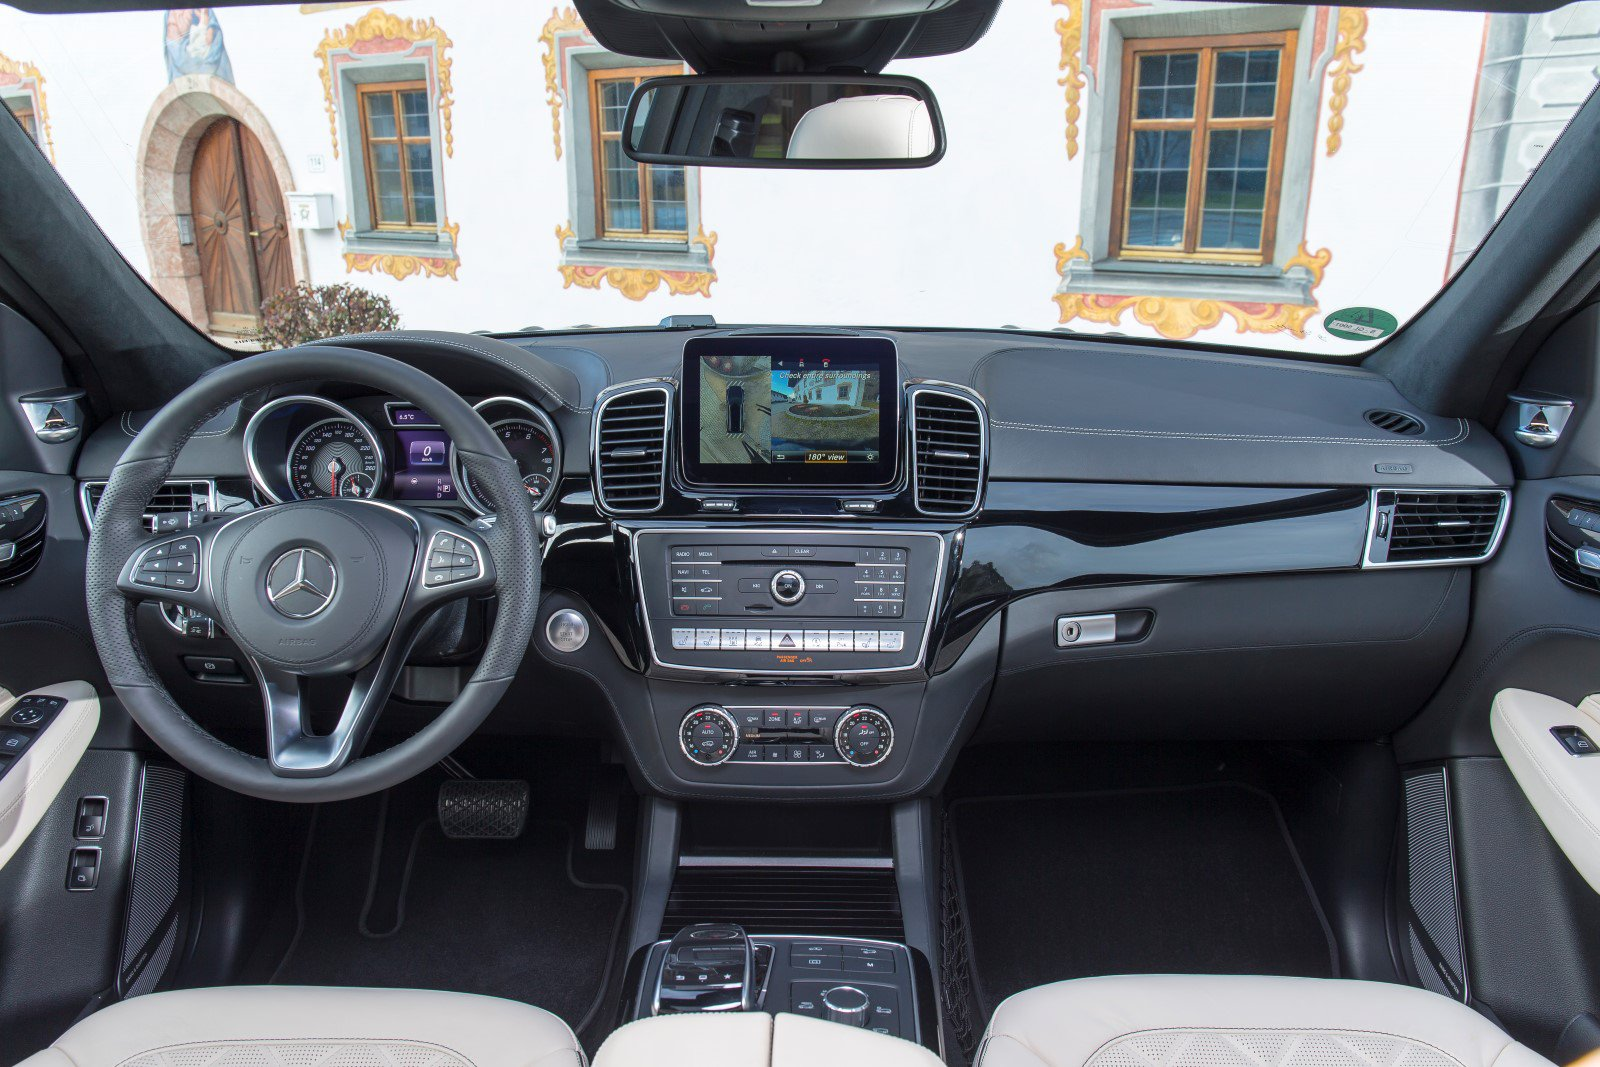 2017 Mercedes-Benz GLS-Class Interior - ImportRates